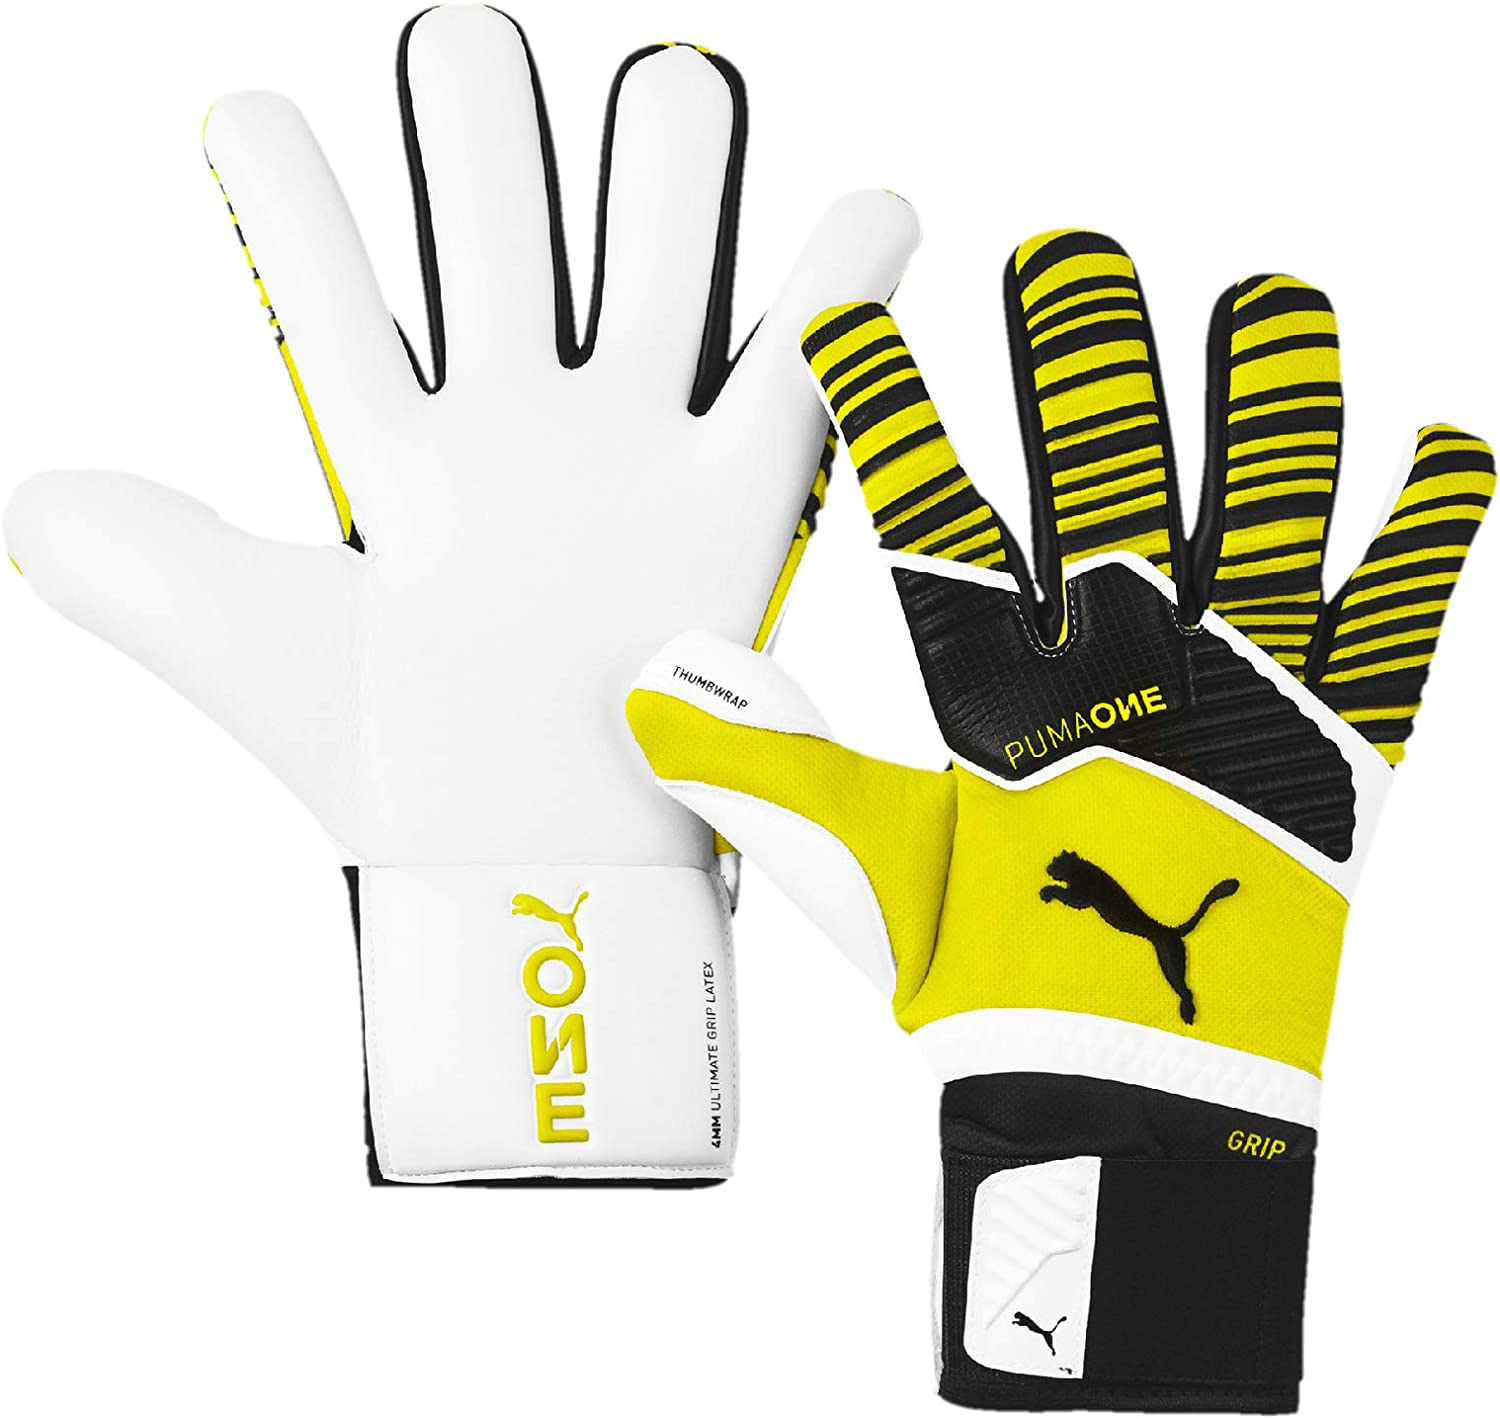 Amazon.com : PUMA ONE Grip 1 Hybrid PRO Hyper Energy Rush ...